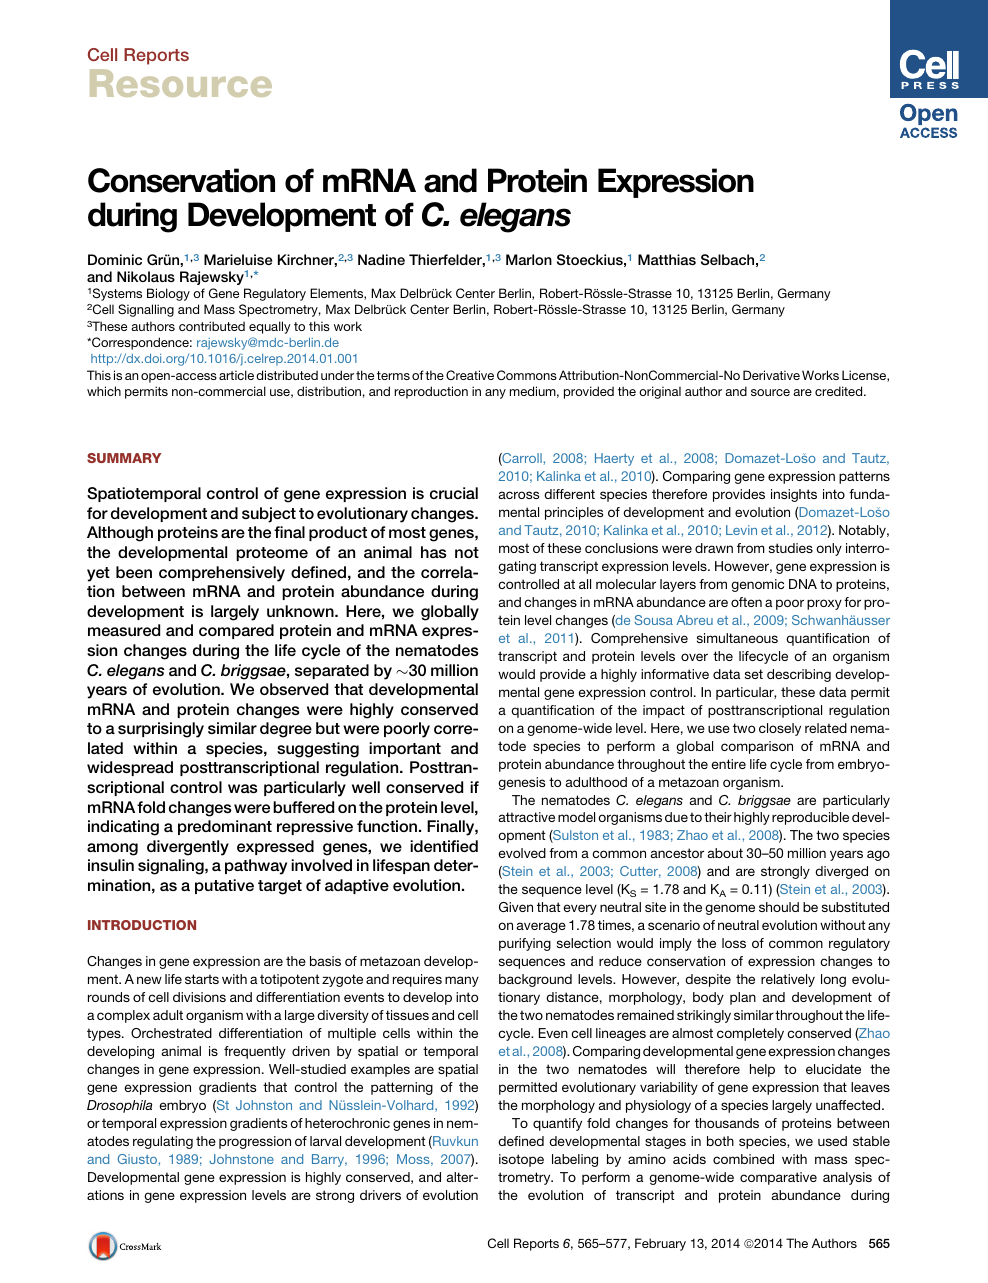 Conservation of mRNA and Protein Expression during Development of C